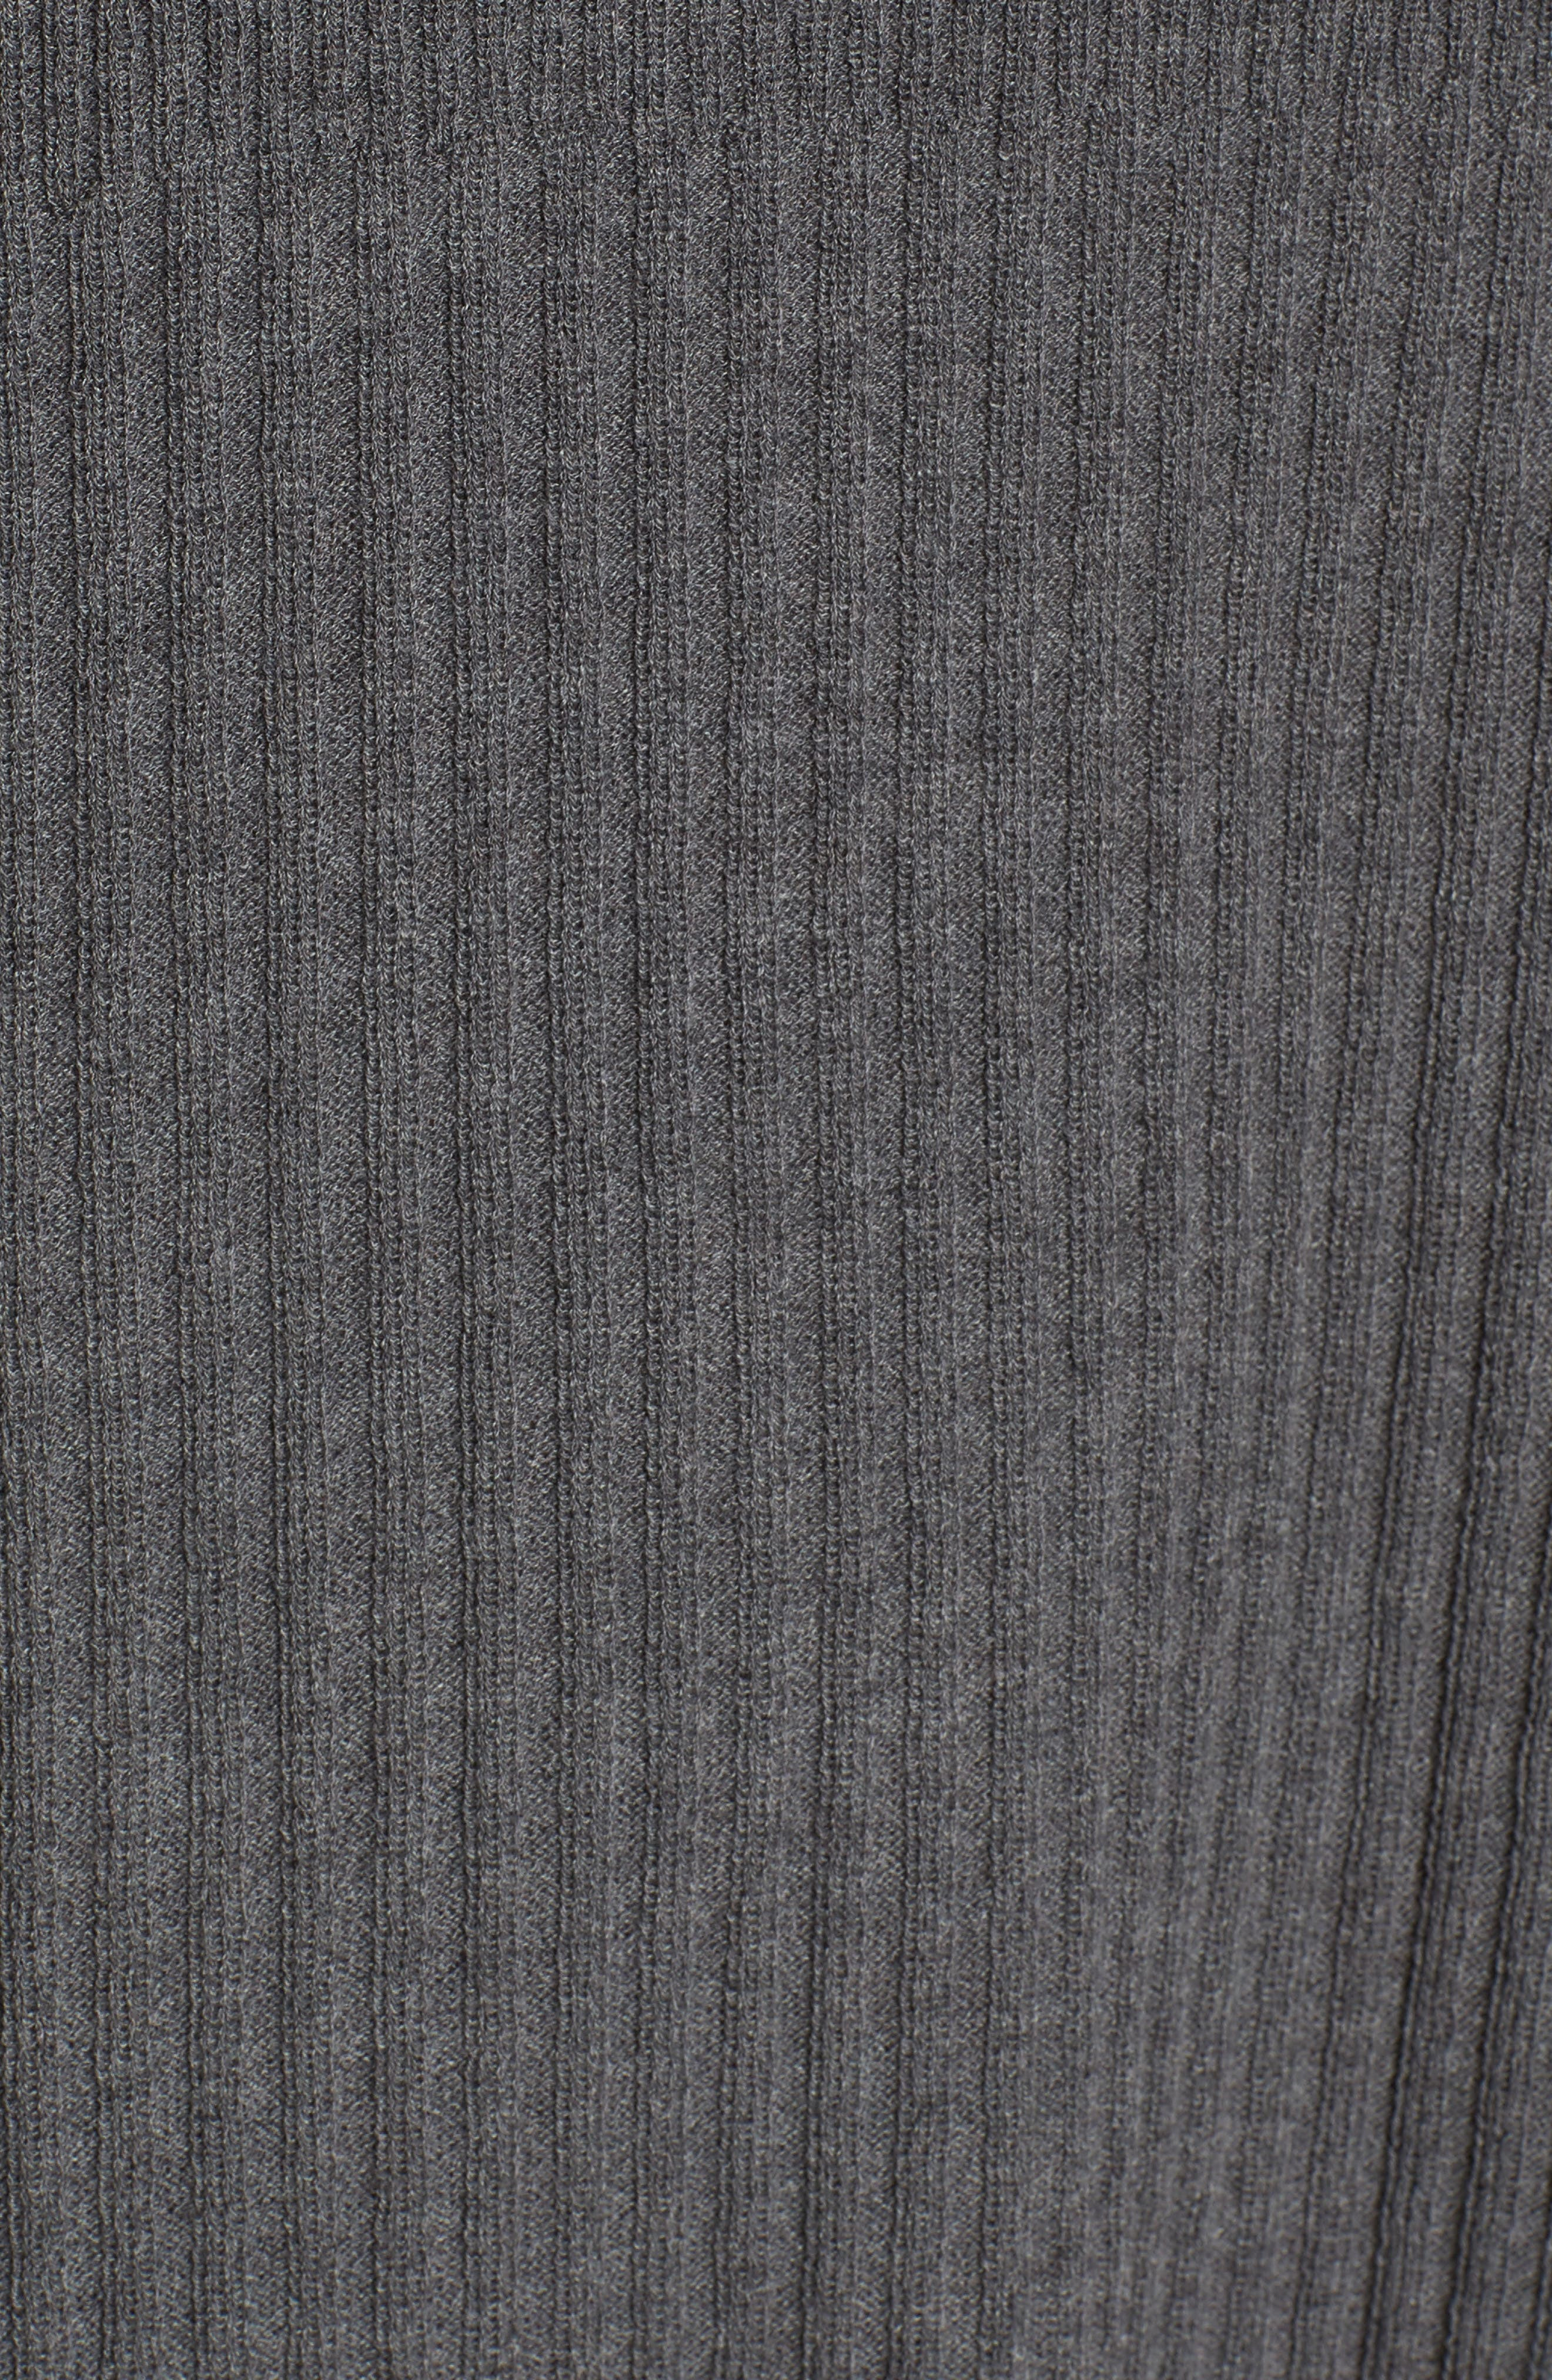 Ribbed Wool Sweater Dress,                             Alternate thumbnail 10, color,